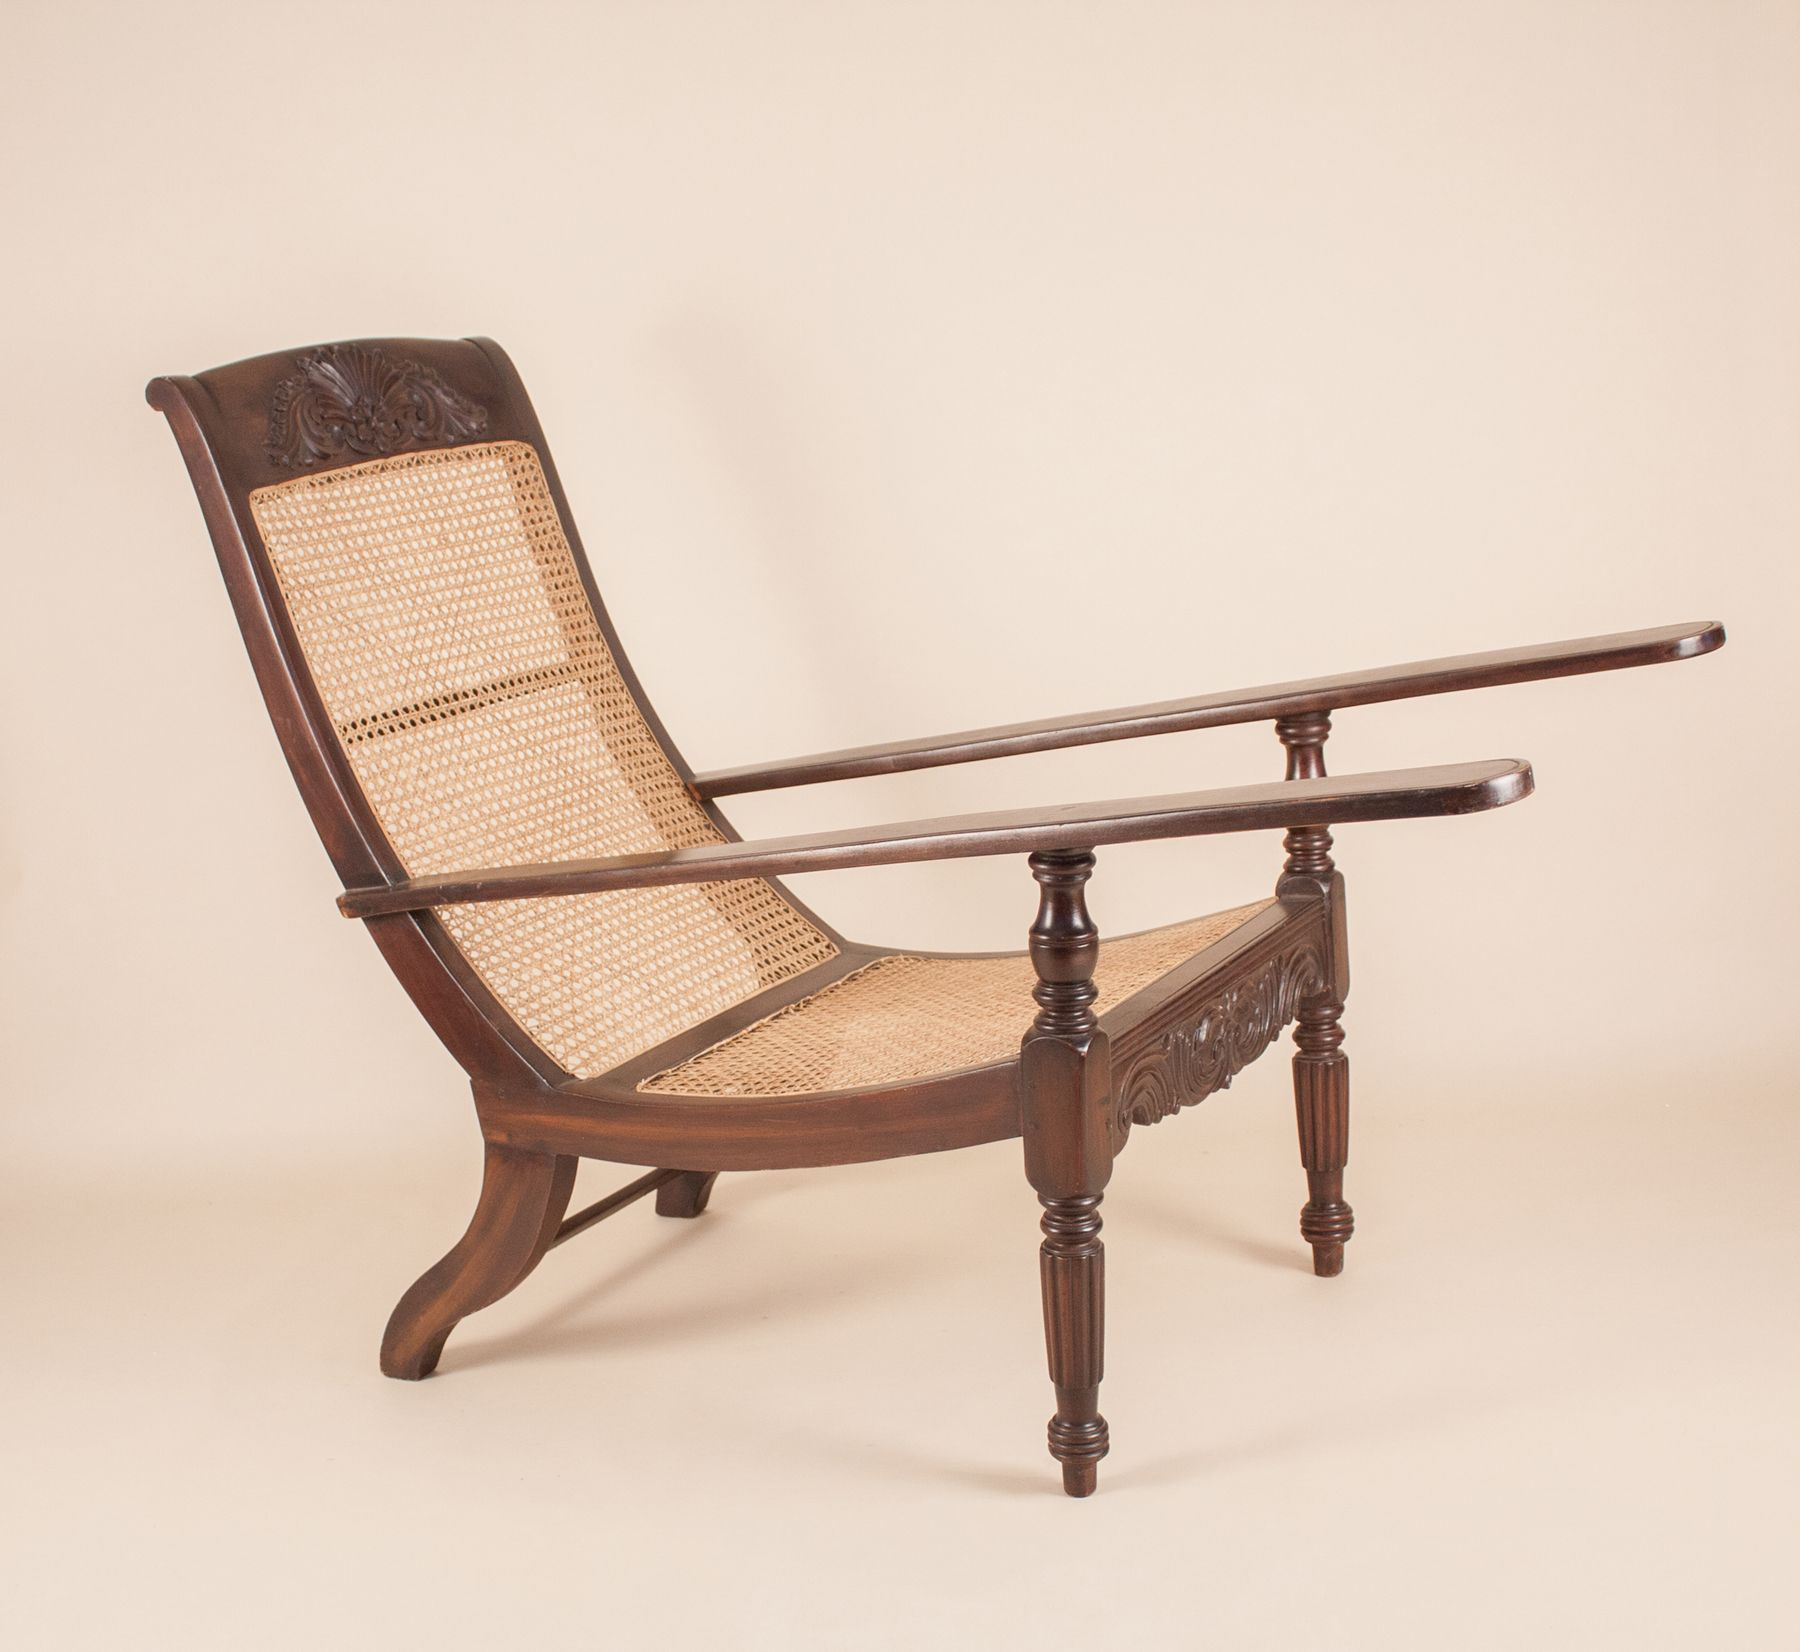 Home / Furniture / Antique British Colonial Plantation Chair & Antique Anglo-Indian Exotic Hardwood Caned Planters Chair or ...